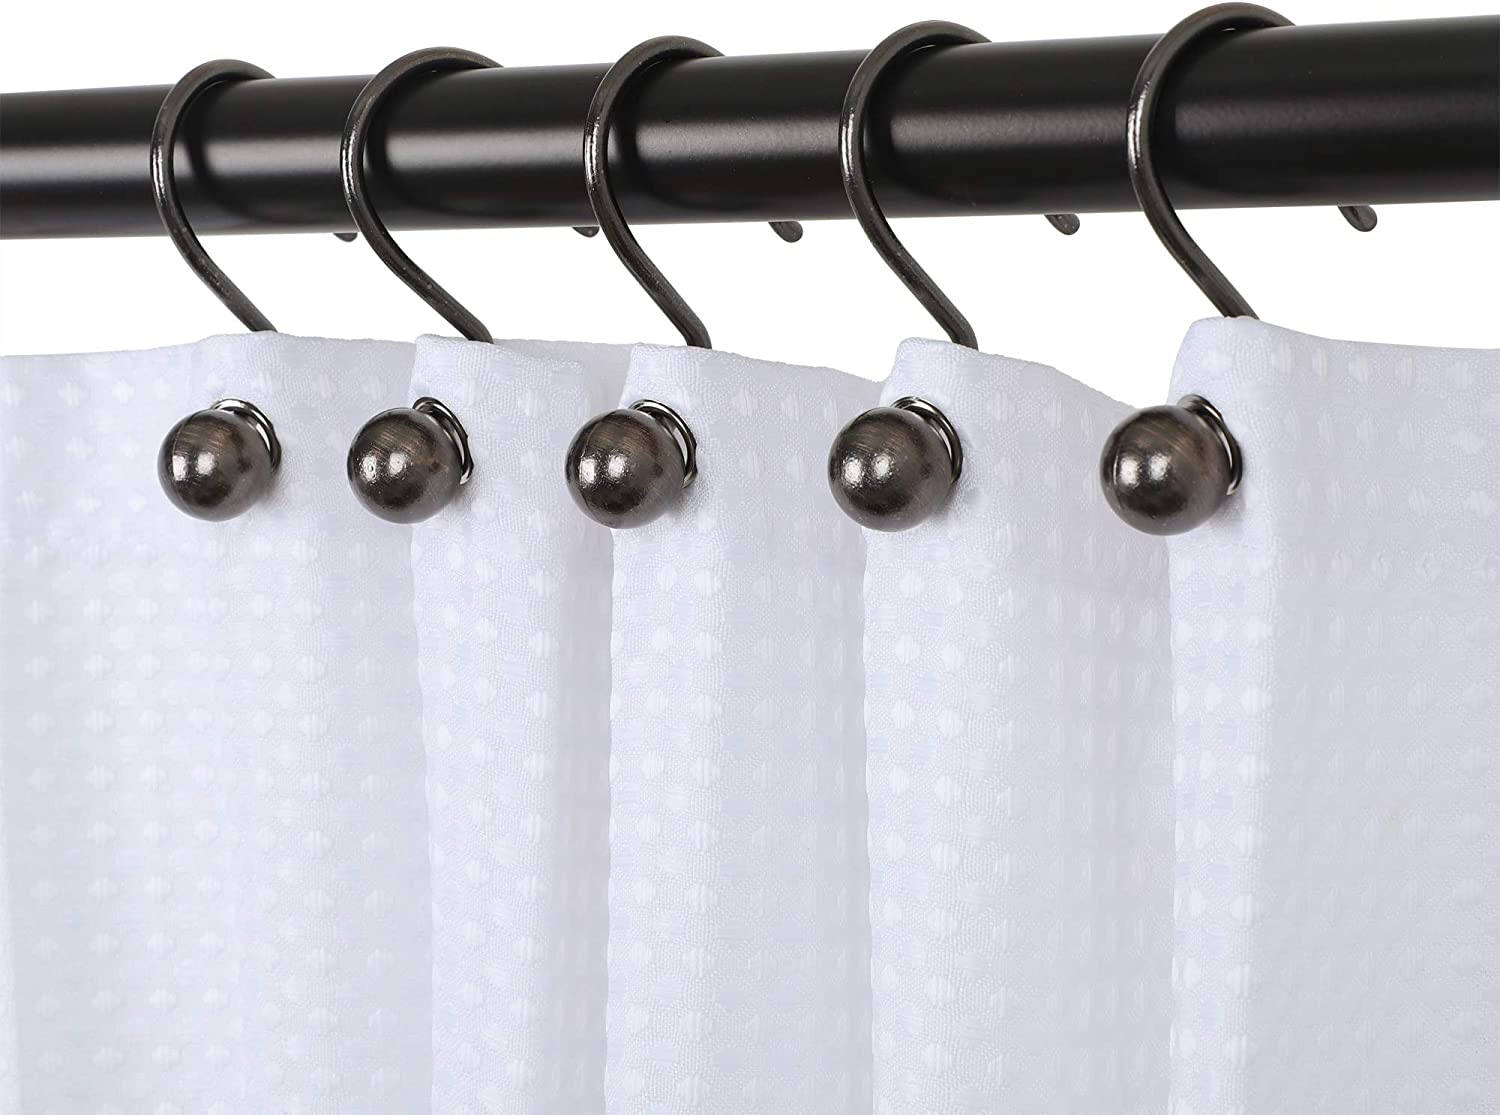 Utopia Alley Ball Shower Curtain Hooks, Rustproof Aluminum Shower Curtain  Hooks for Bathroom Shower Rods Curtains, Set of 20   Oil Rubbed Bronze